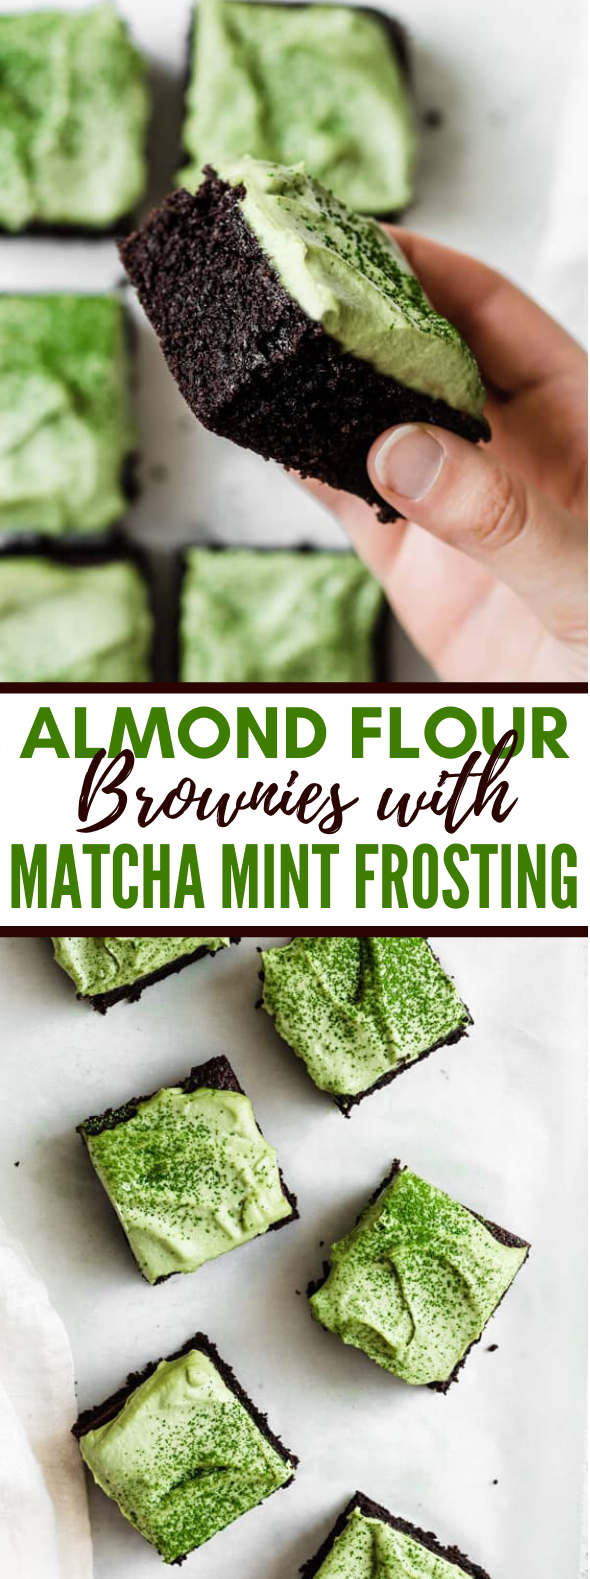 ALMOND FLOUR BROWNIES WITH MATCHA MINT FROSTING #desserts #glutenfree